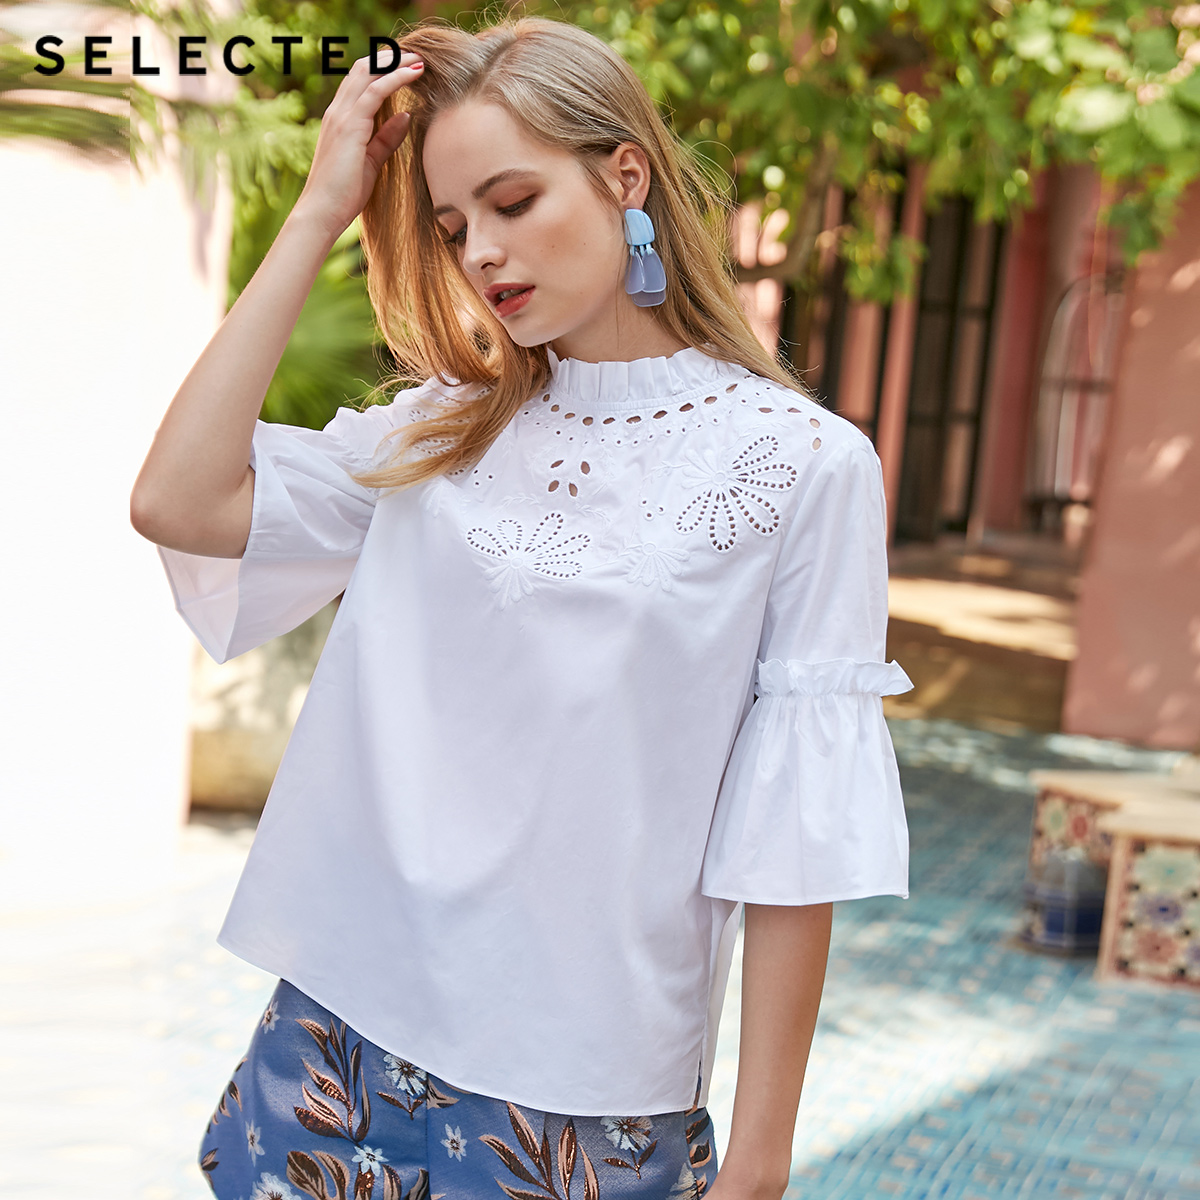 SELECTED Women s Summer 100 Cotton Ruffled Cut out White T shirt S 419241505